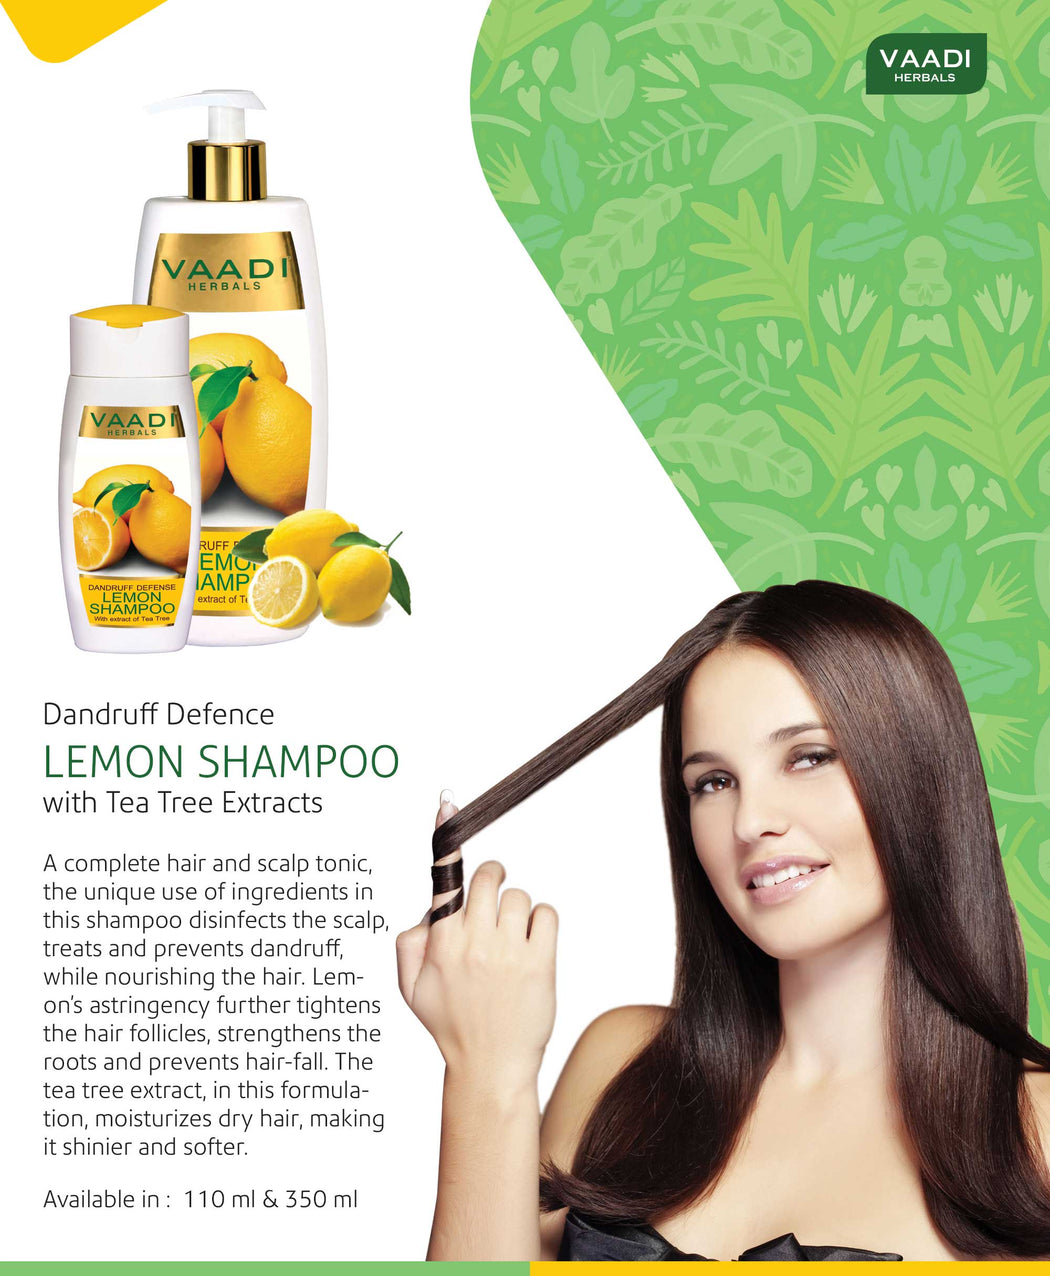 Dandruff Defense Organic Lemon Shampoo with Tea Tree Extract (3 x 110 ml/ 4 fl oz)